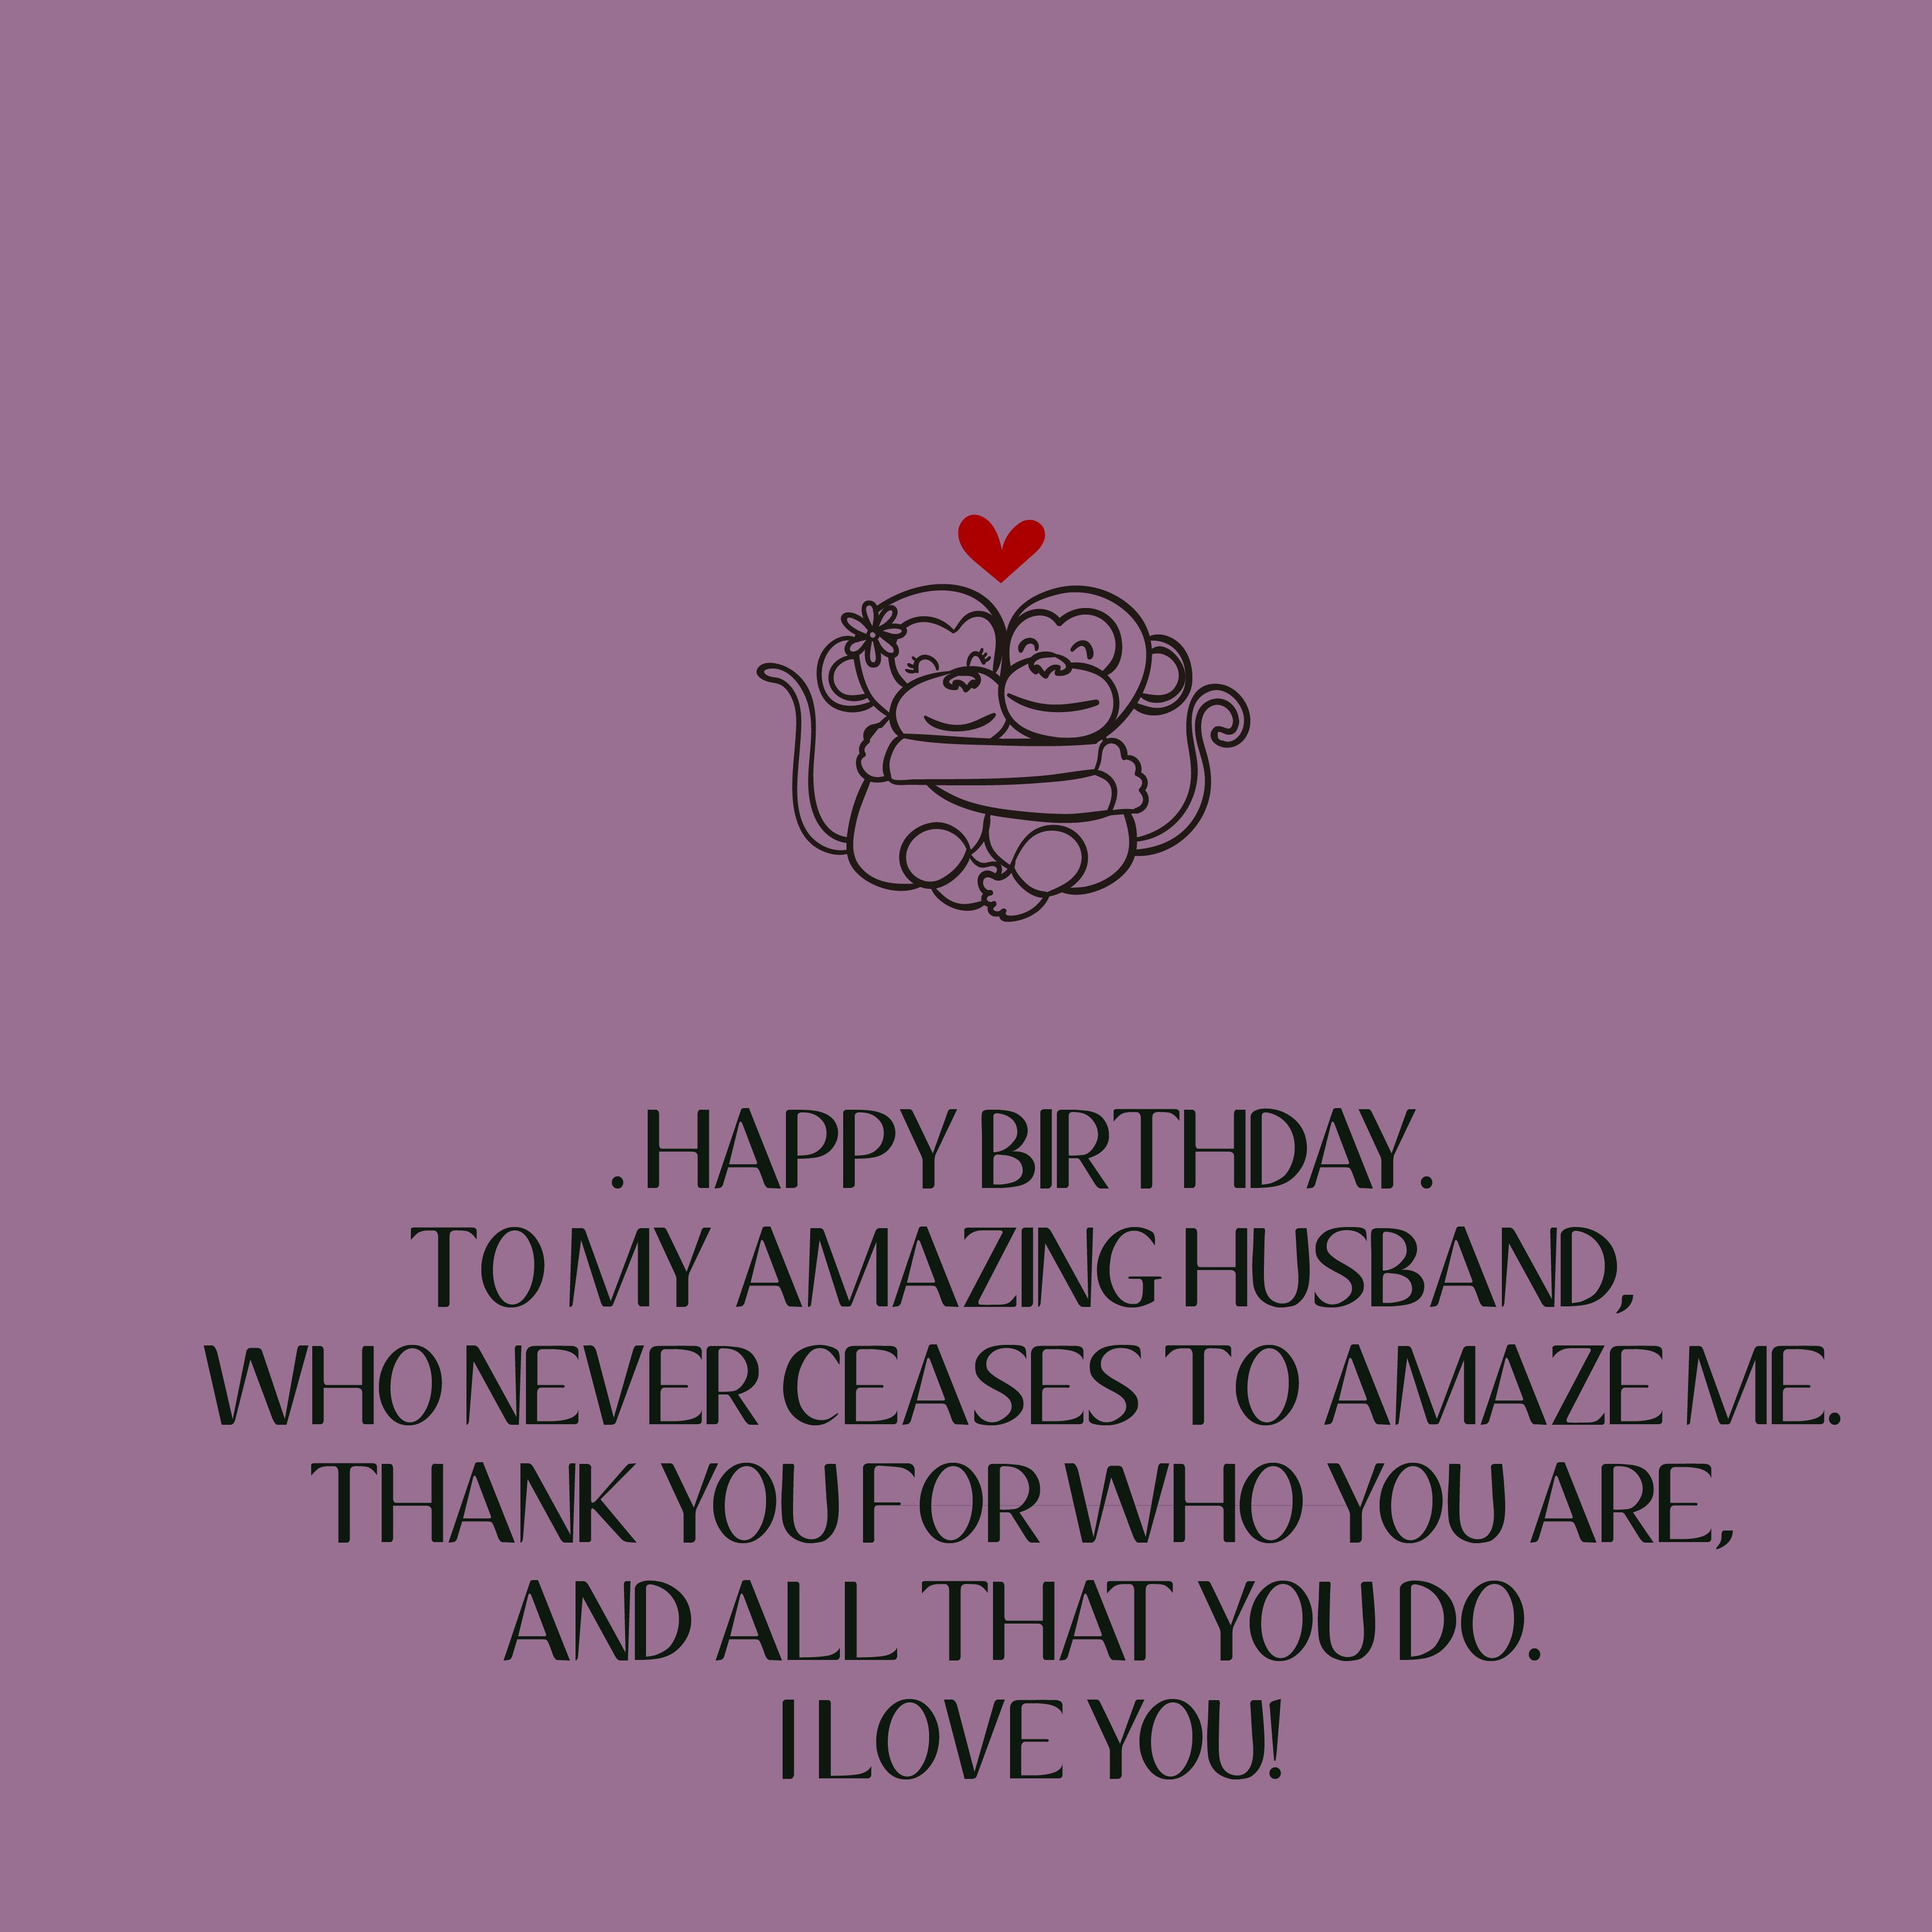 Happy Birthday Husband Wishes Messages Quotes And Cards: 200+ Happy Birthday Husband Wishes